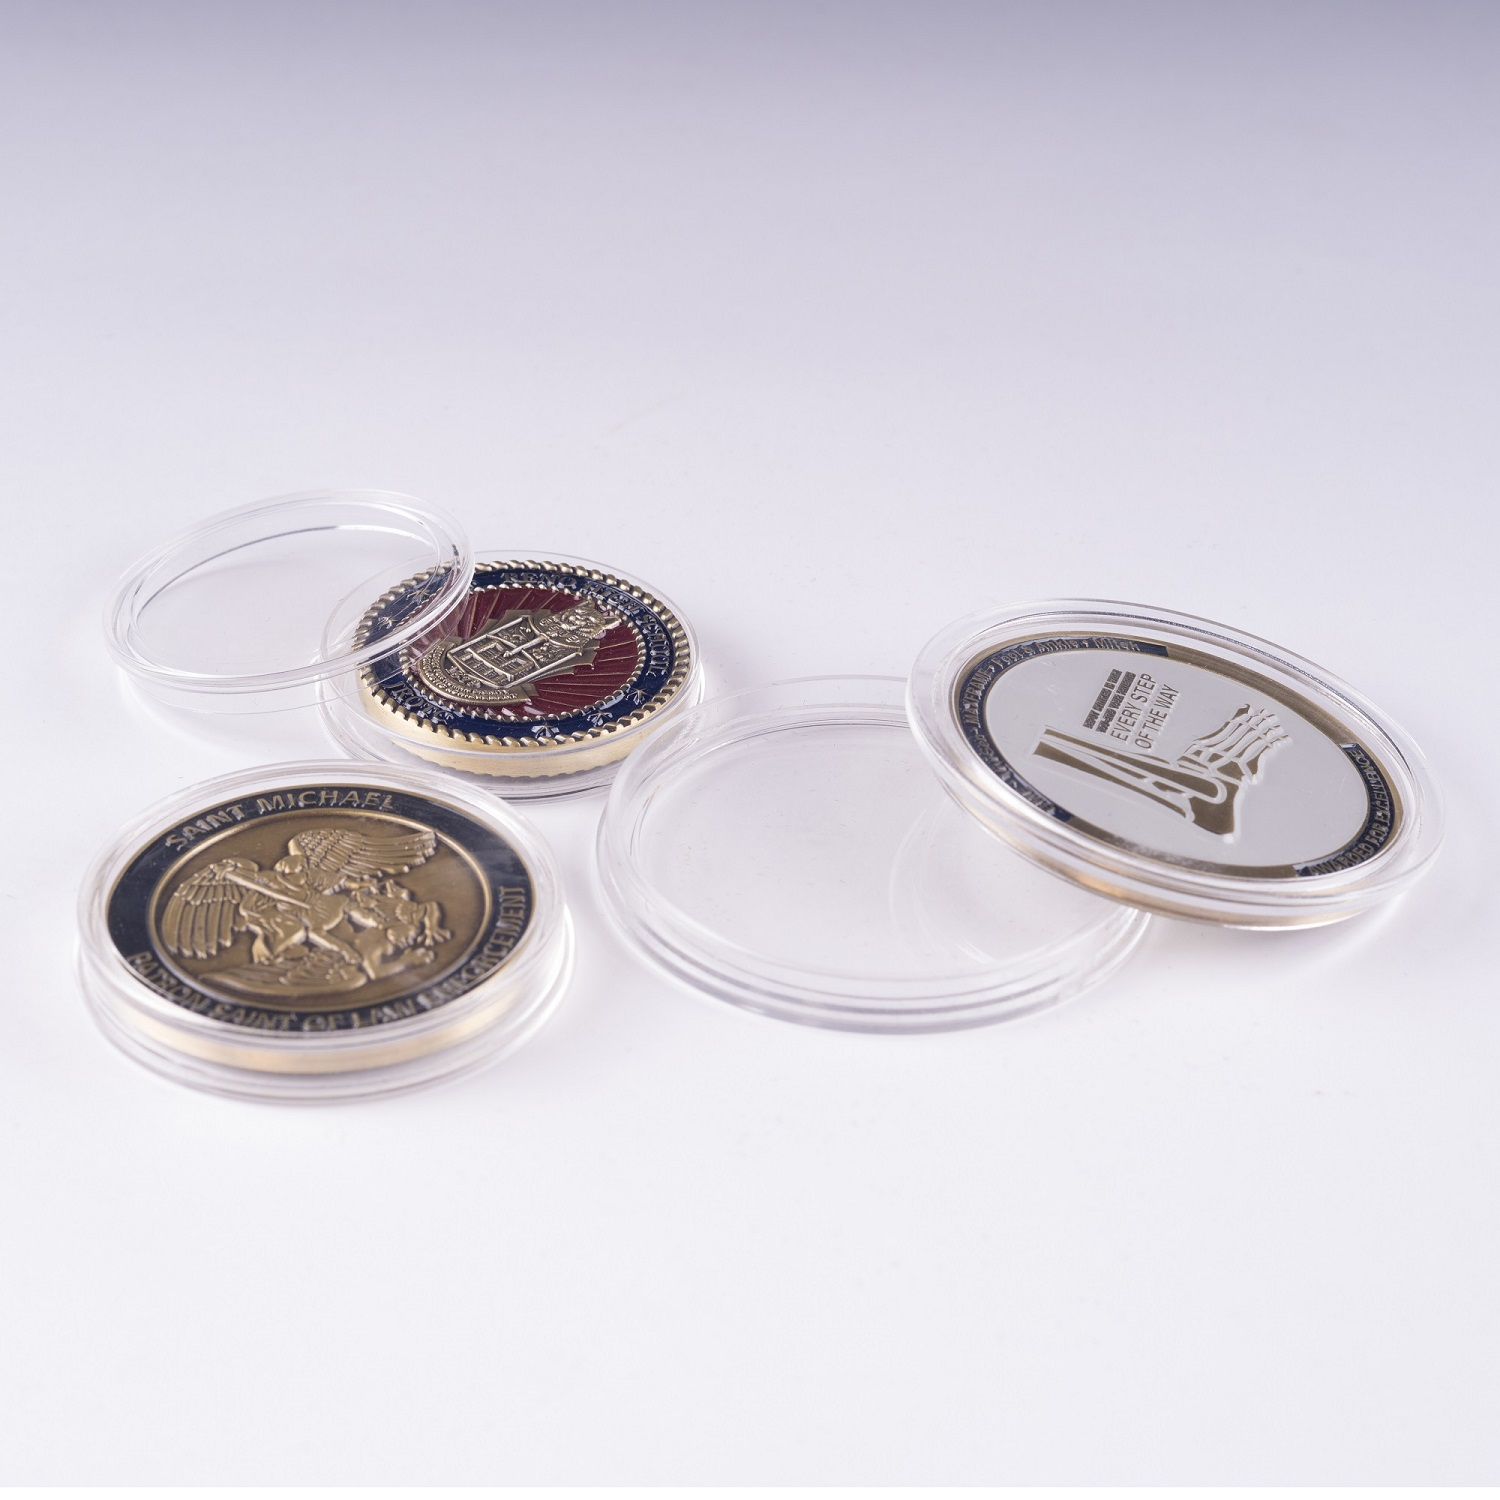 Lowest Price for Unique Keychains Online - hard enamel coin – Coins and Pins Co., Ltd.